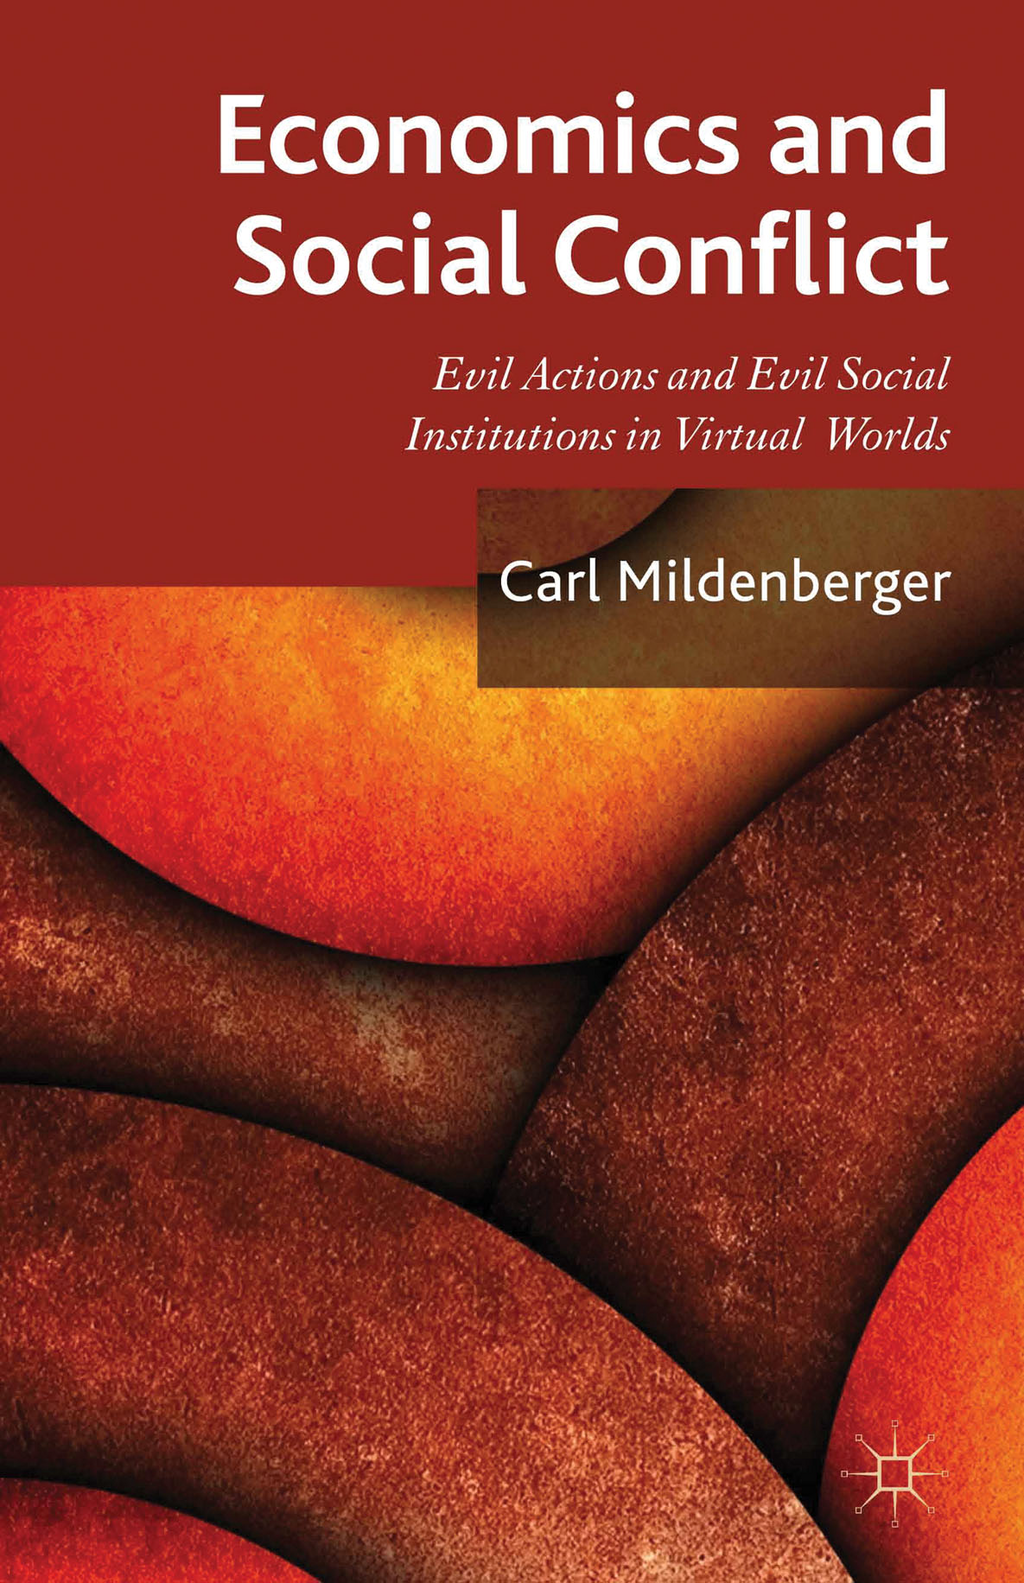 Economics and Social Conflict Evil Actions and Evil Social Institutions in Virtual Worlds